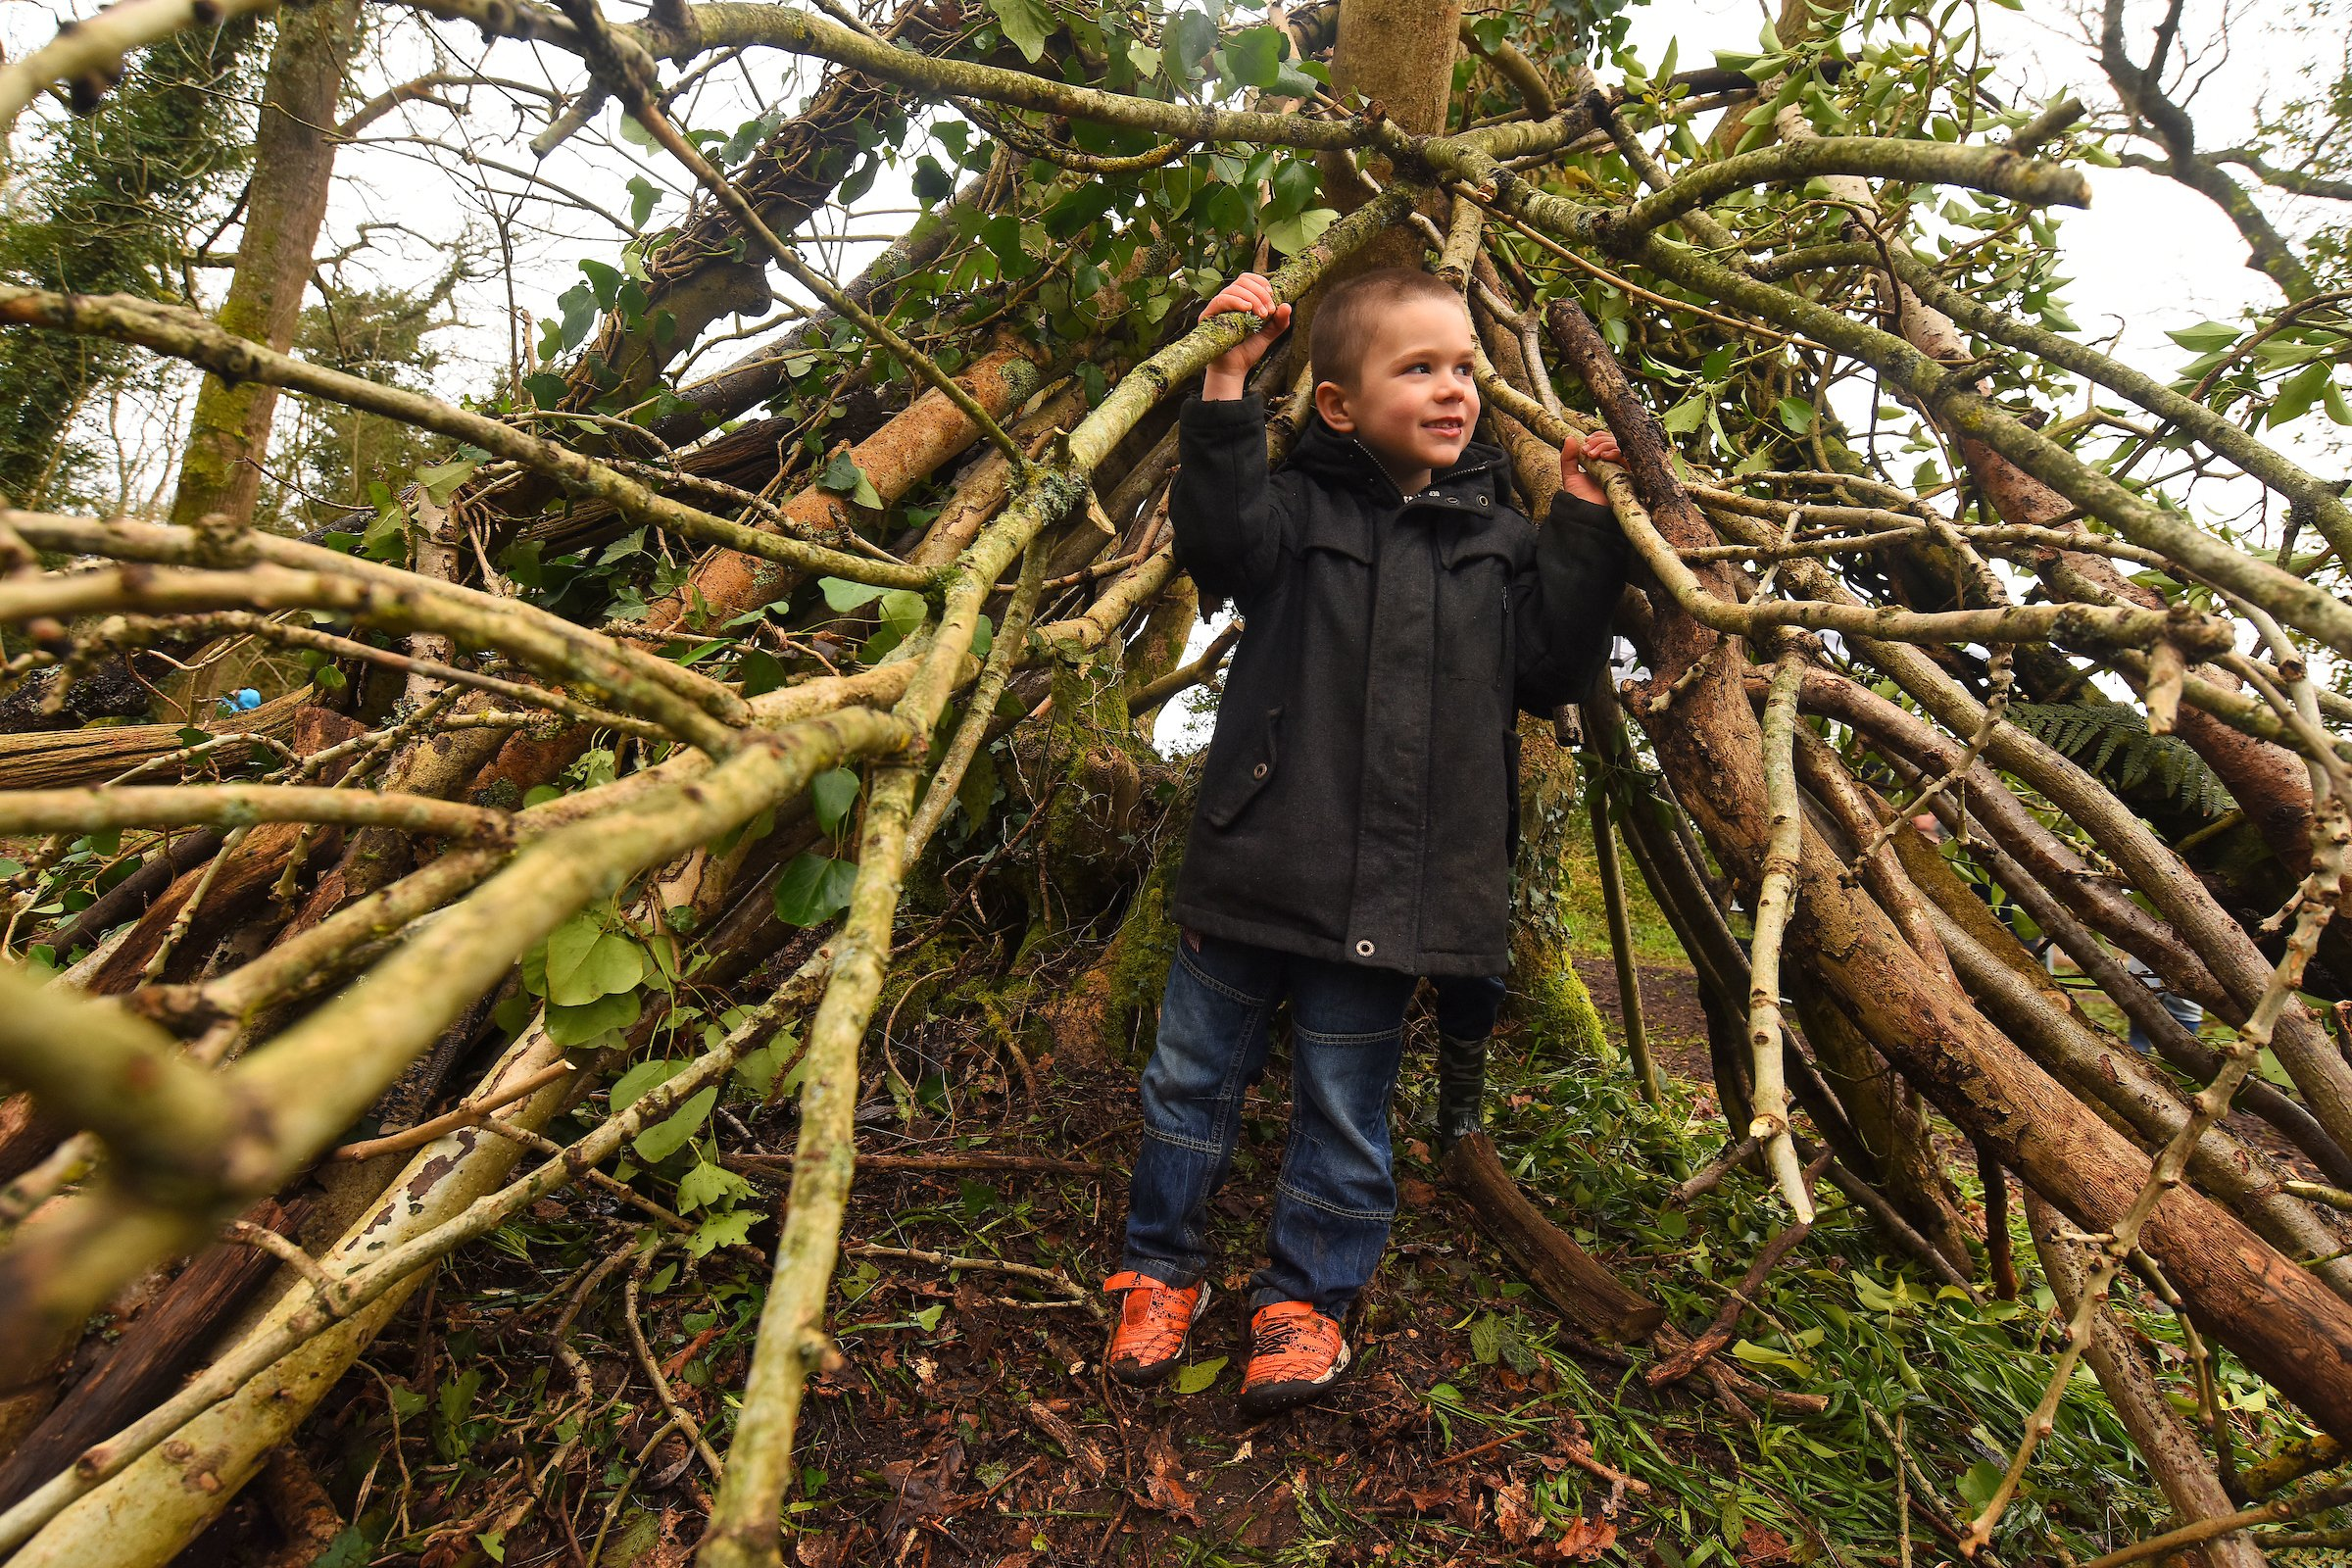 Den building at the Holbury Manor wild play site opening April 2018